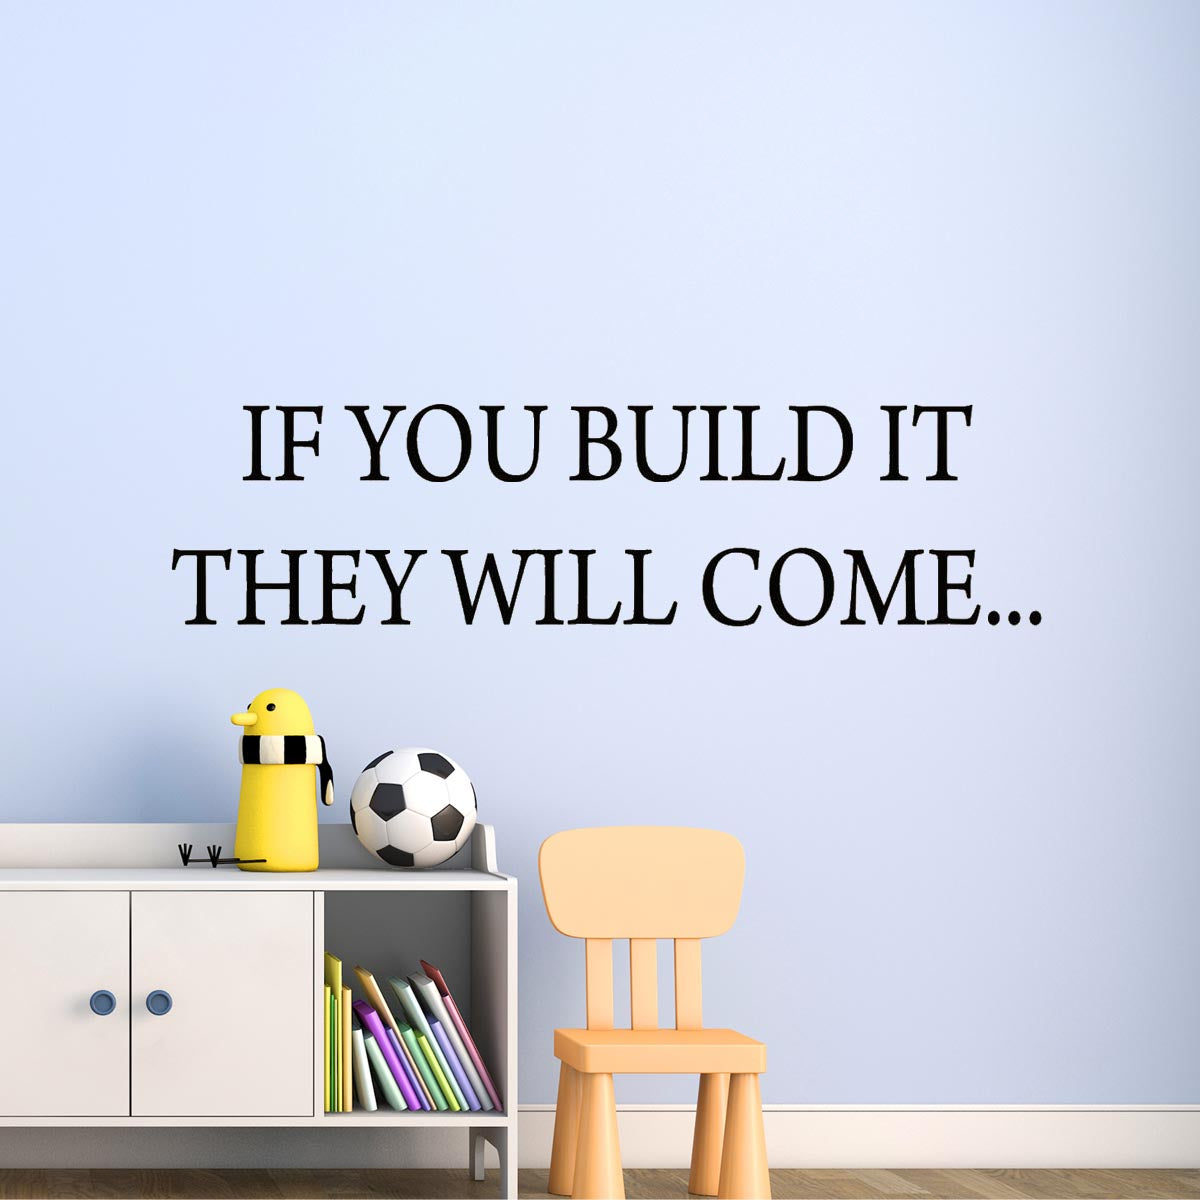 VWAQ If You Build It They Will Come Vinyl Wall Decal - VWAQ Vinyl Wall Art Quotes and Prints